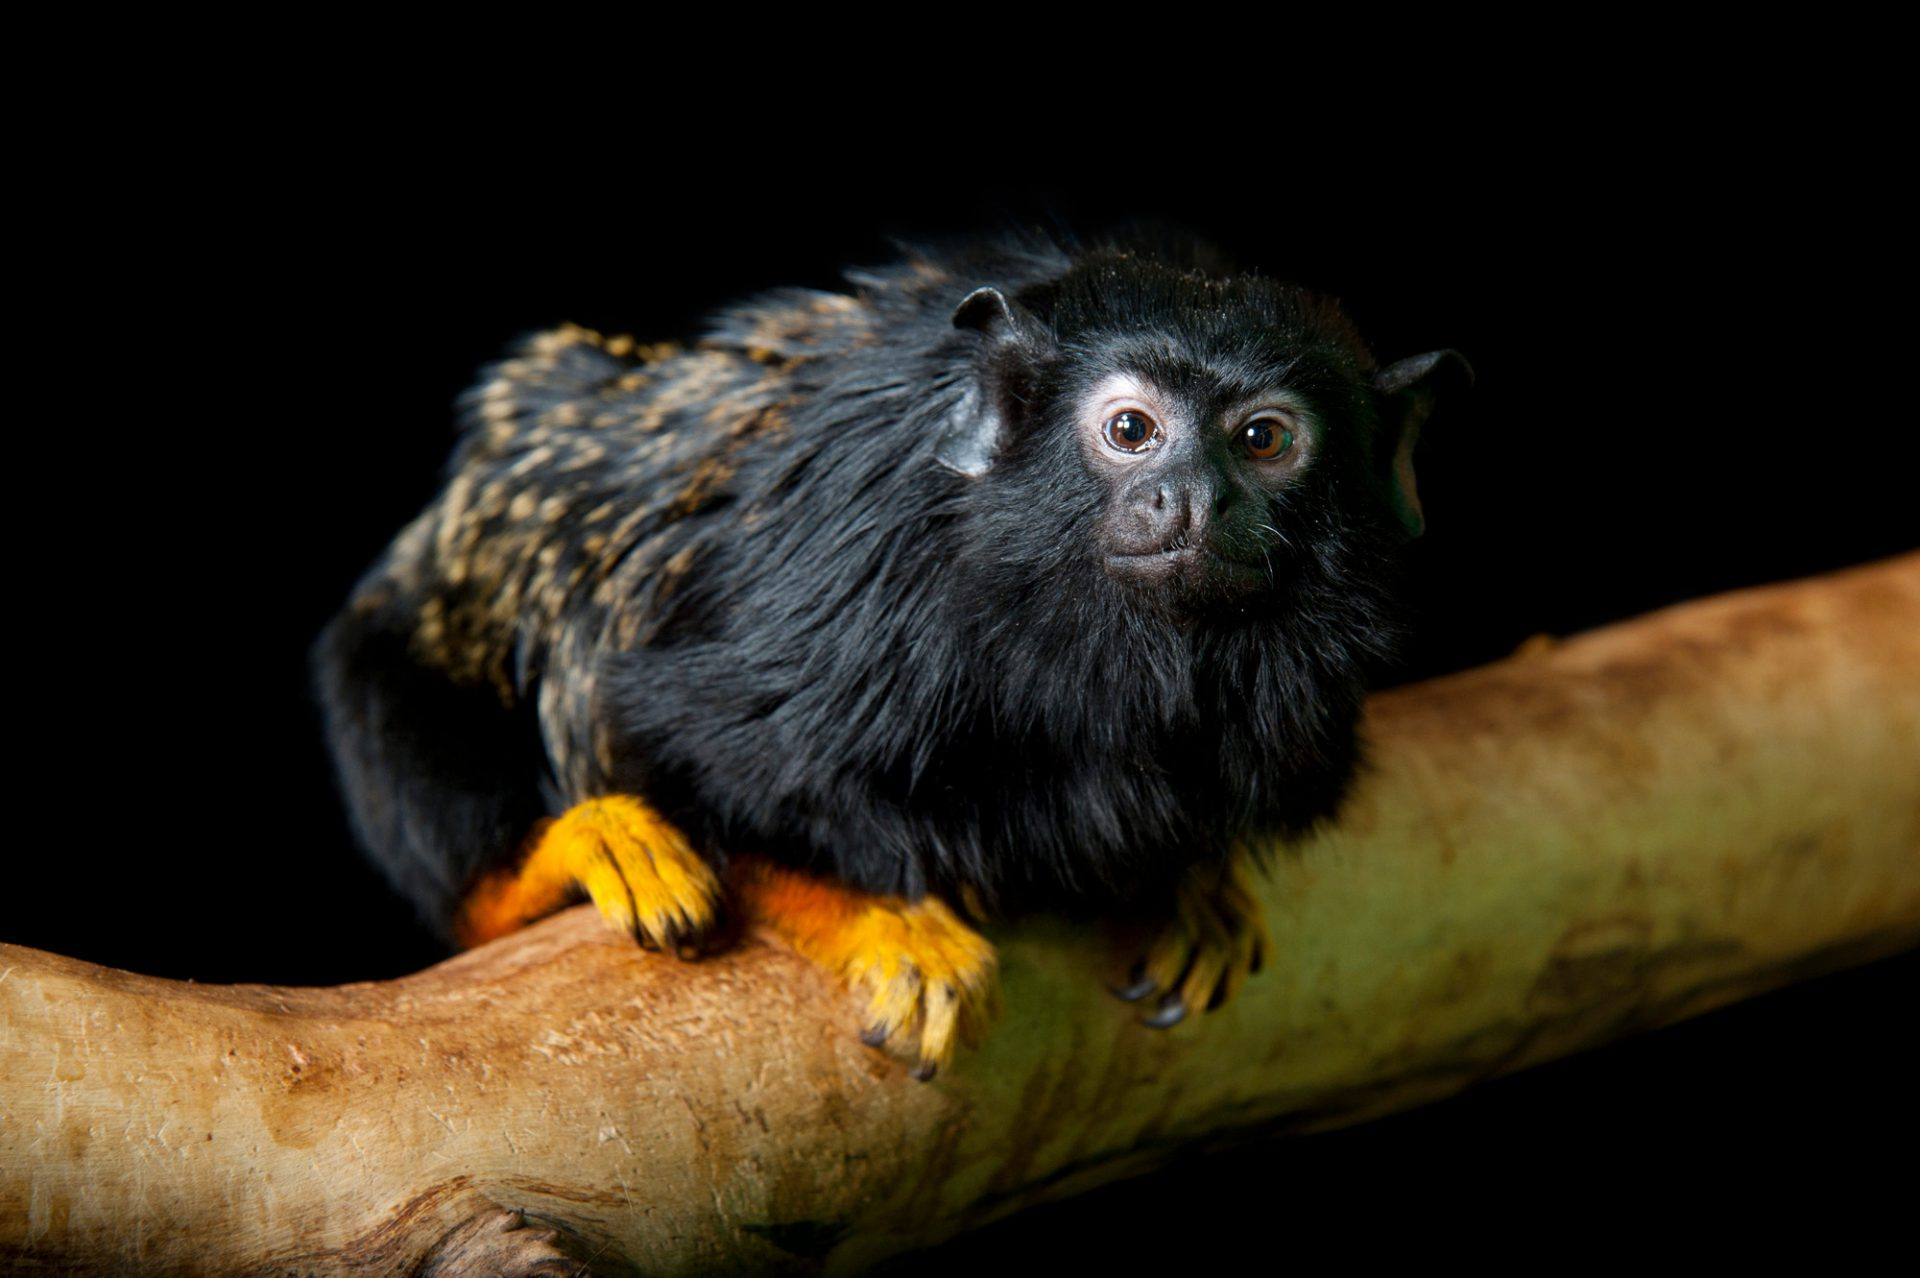 A yellow-handed tamarin (Saguinus midas) at the Miller Park Zoo. The future of this species is quite uncertain as it is going to be 'phased out' in favor of other more showy and popular small primate species.